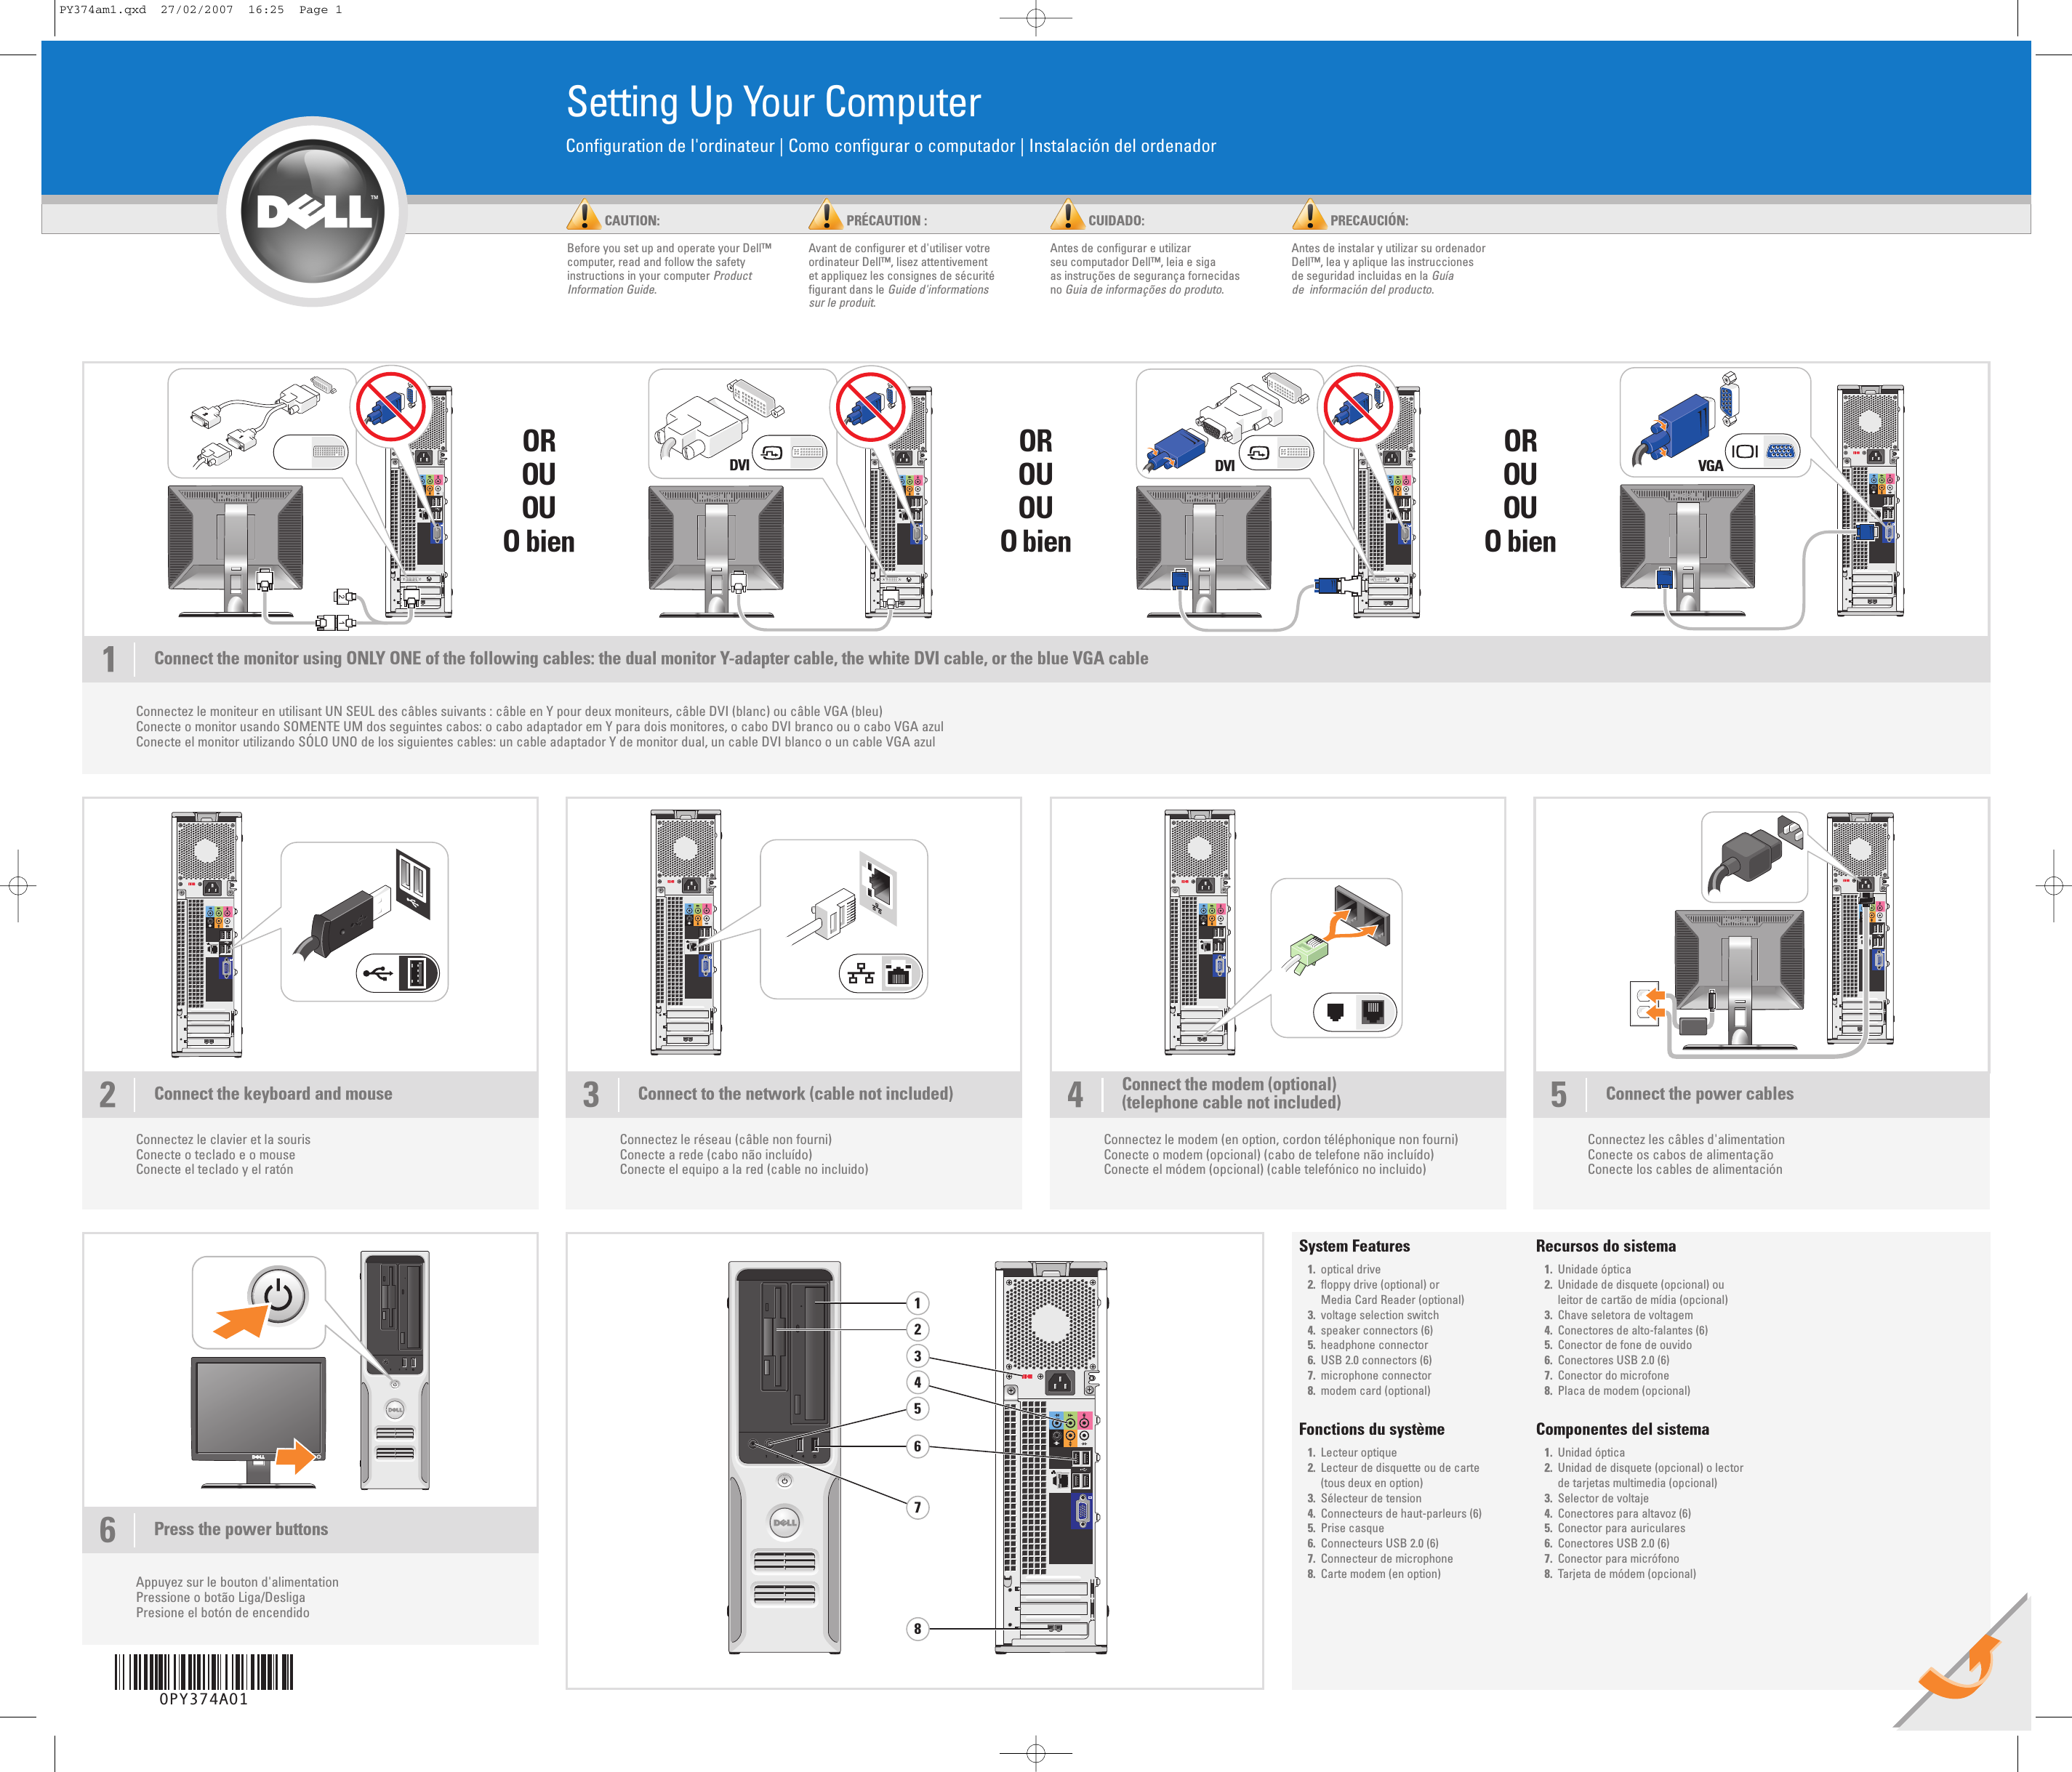 Dell Dimension C521 Owner's Manual 140 pages · Dell Dimension C521 Setup  Diagram